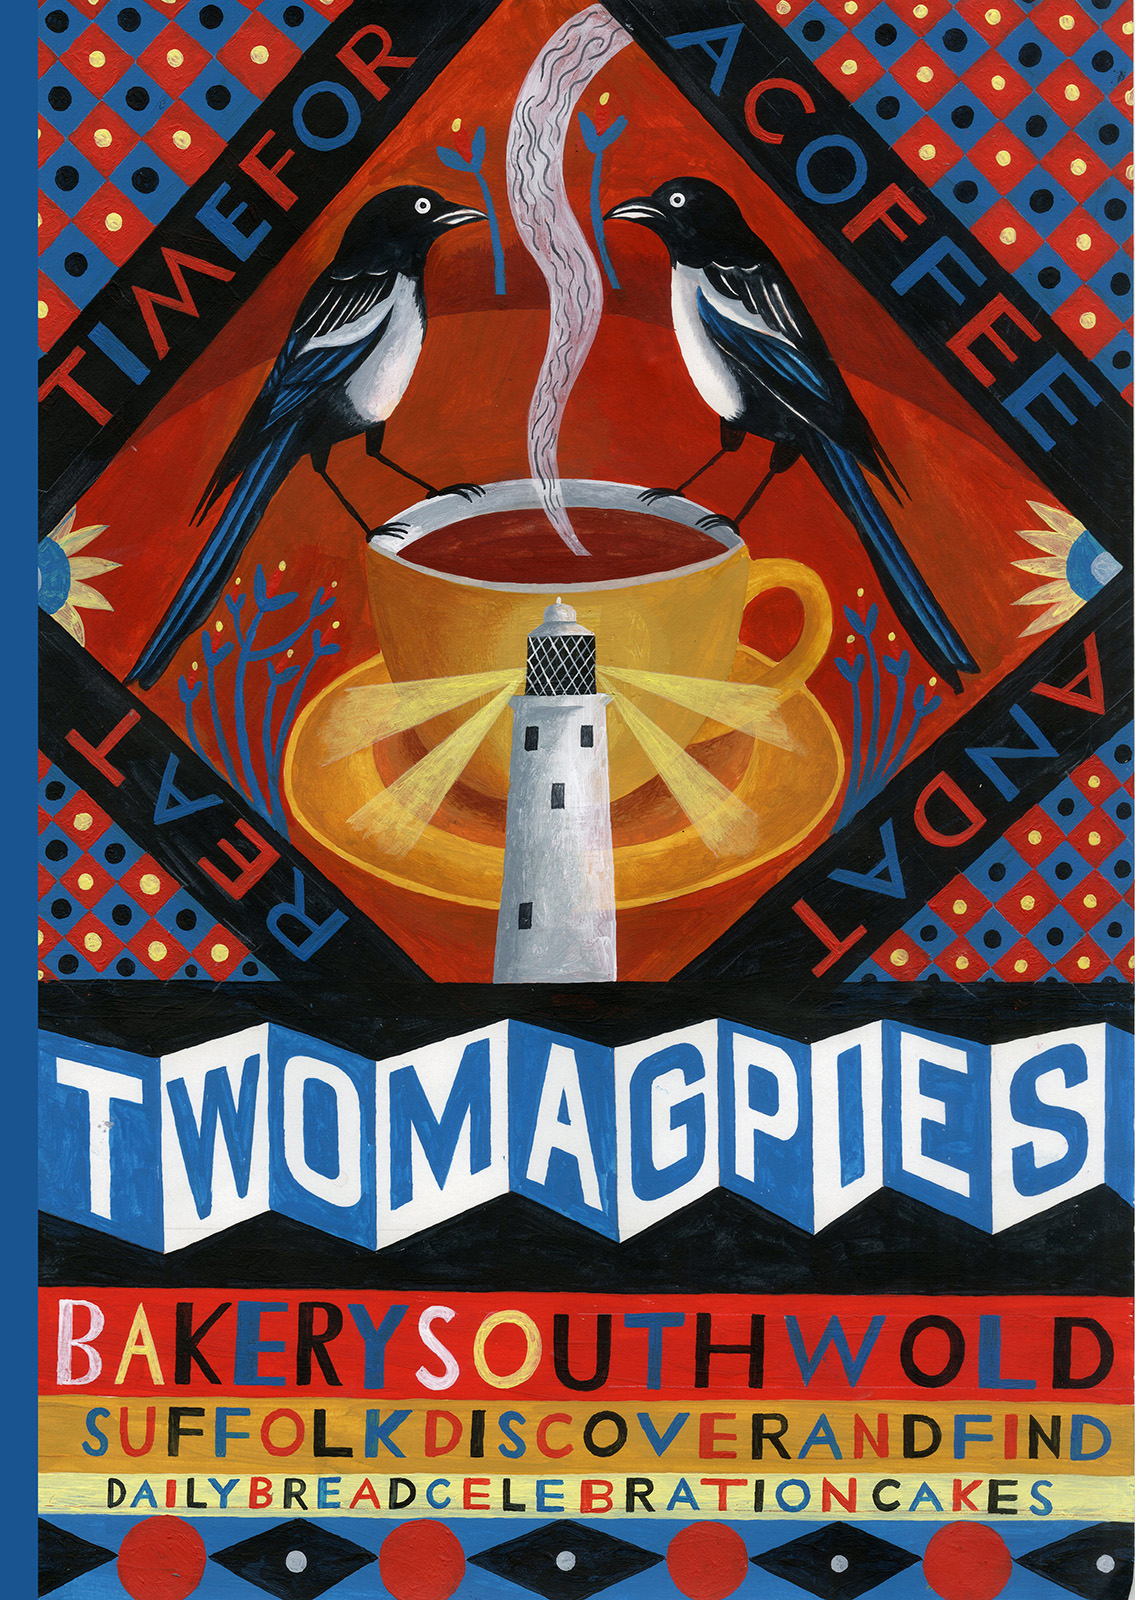 Two Magpies Bakery